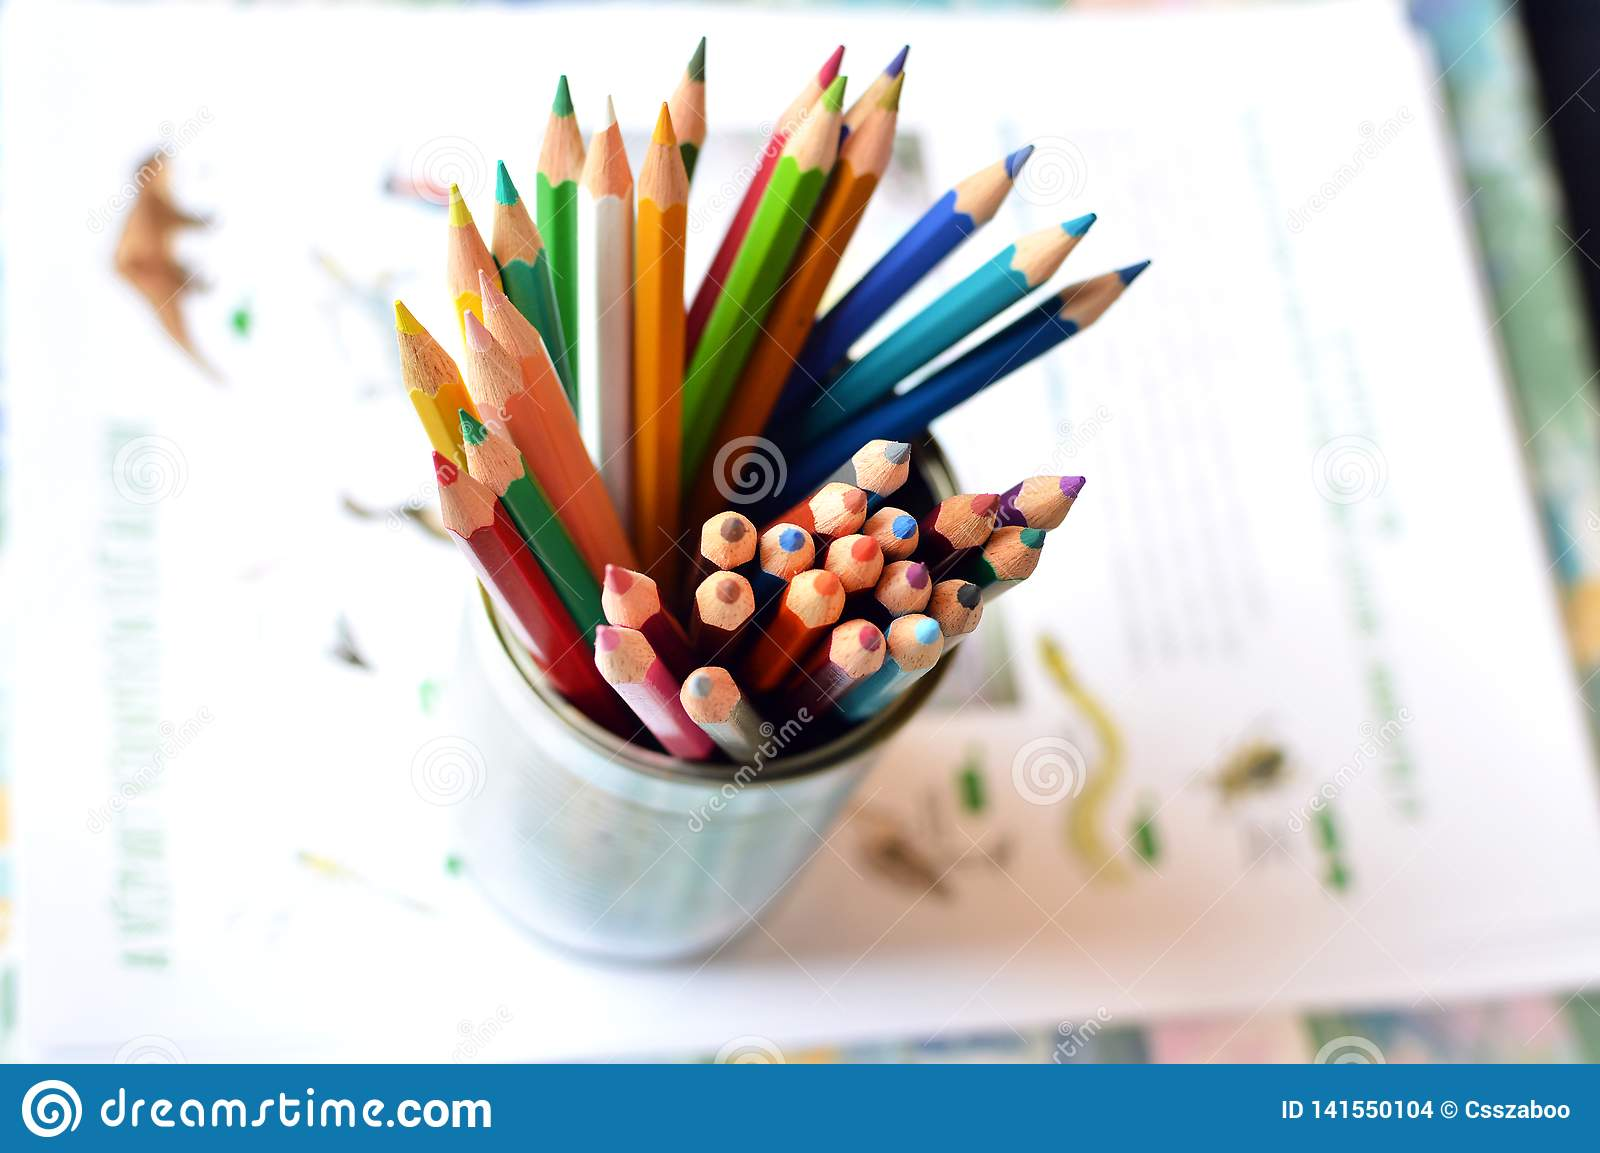 Top shot, close up of different, used, blunt, dull and sharpened colored pencils on bright papers background, space for text,